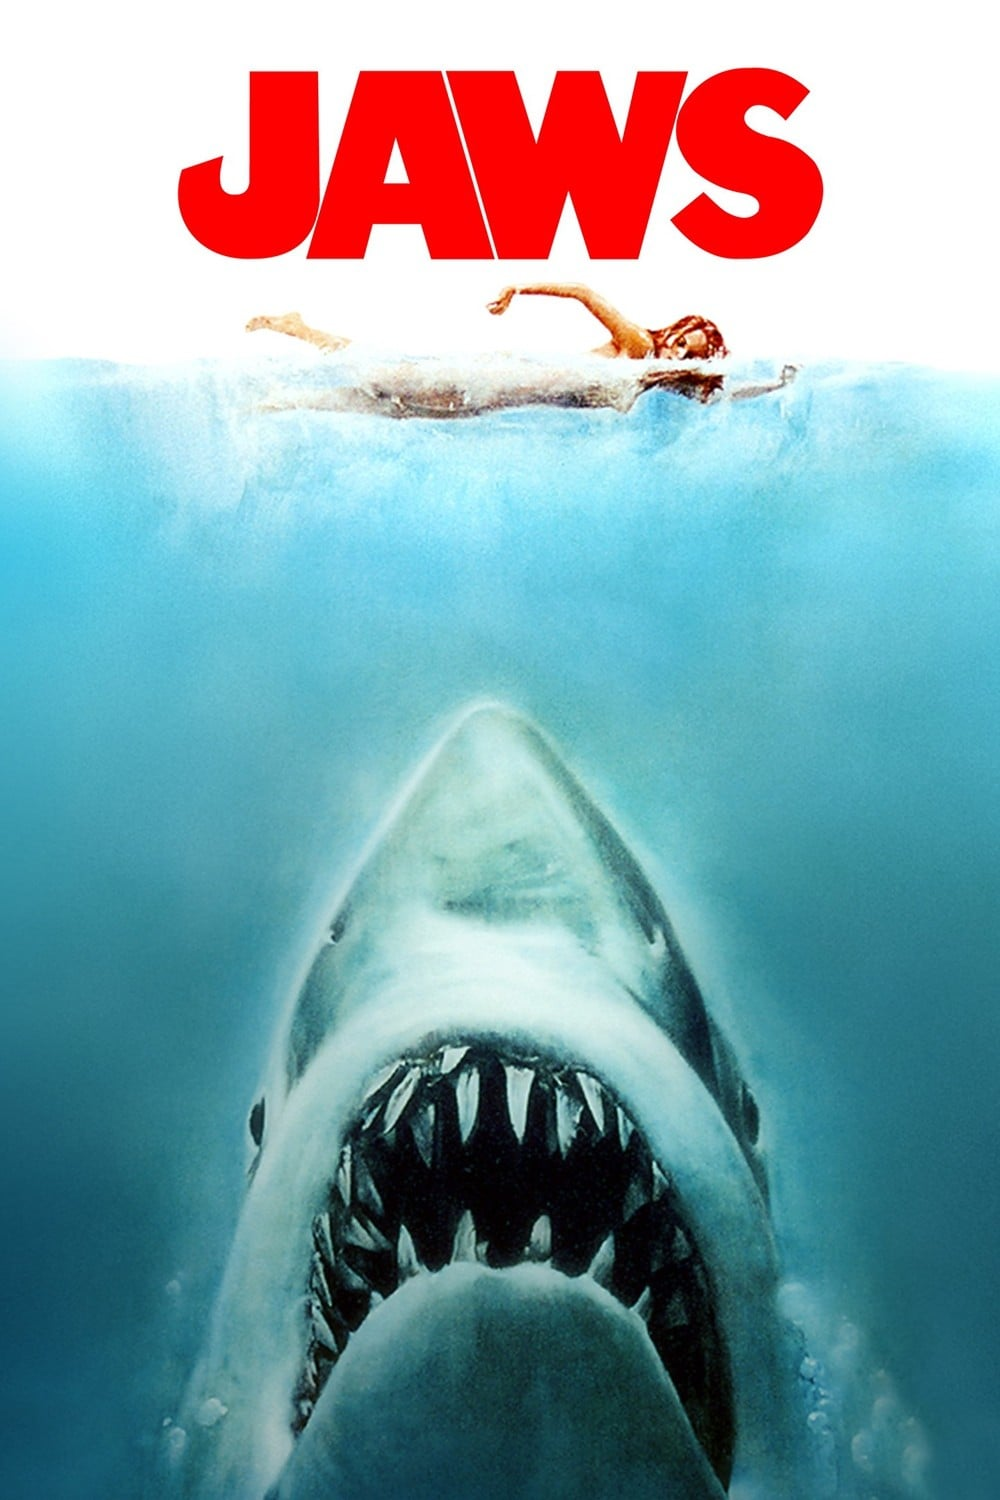 Jaws-1975-release-date-movie-poster.jpg